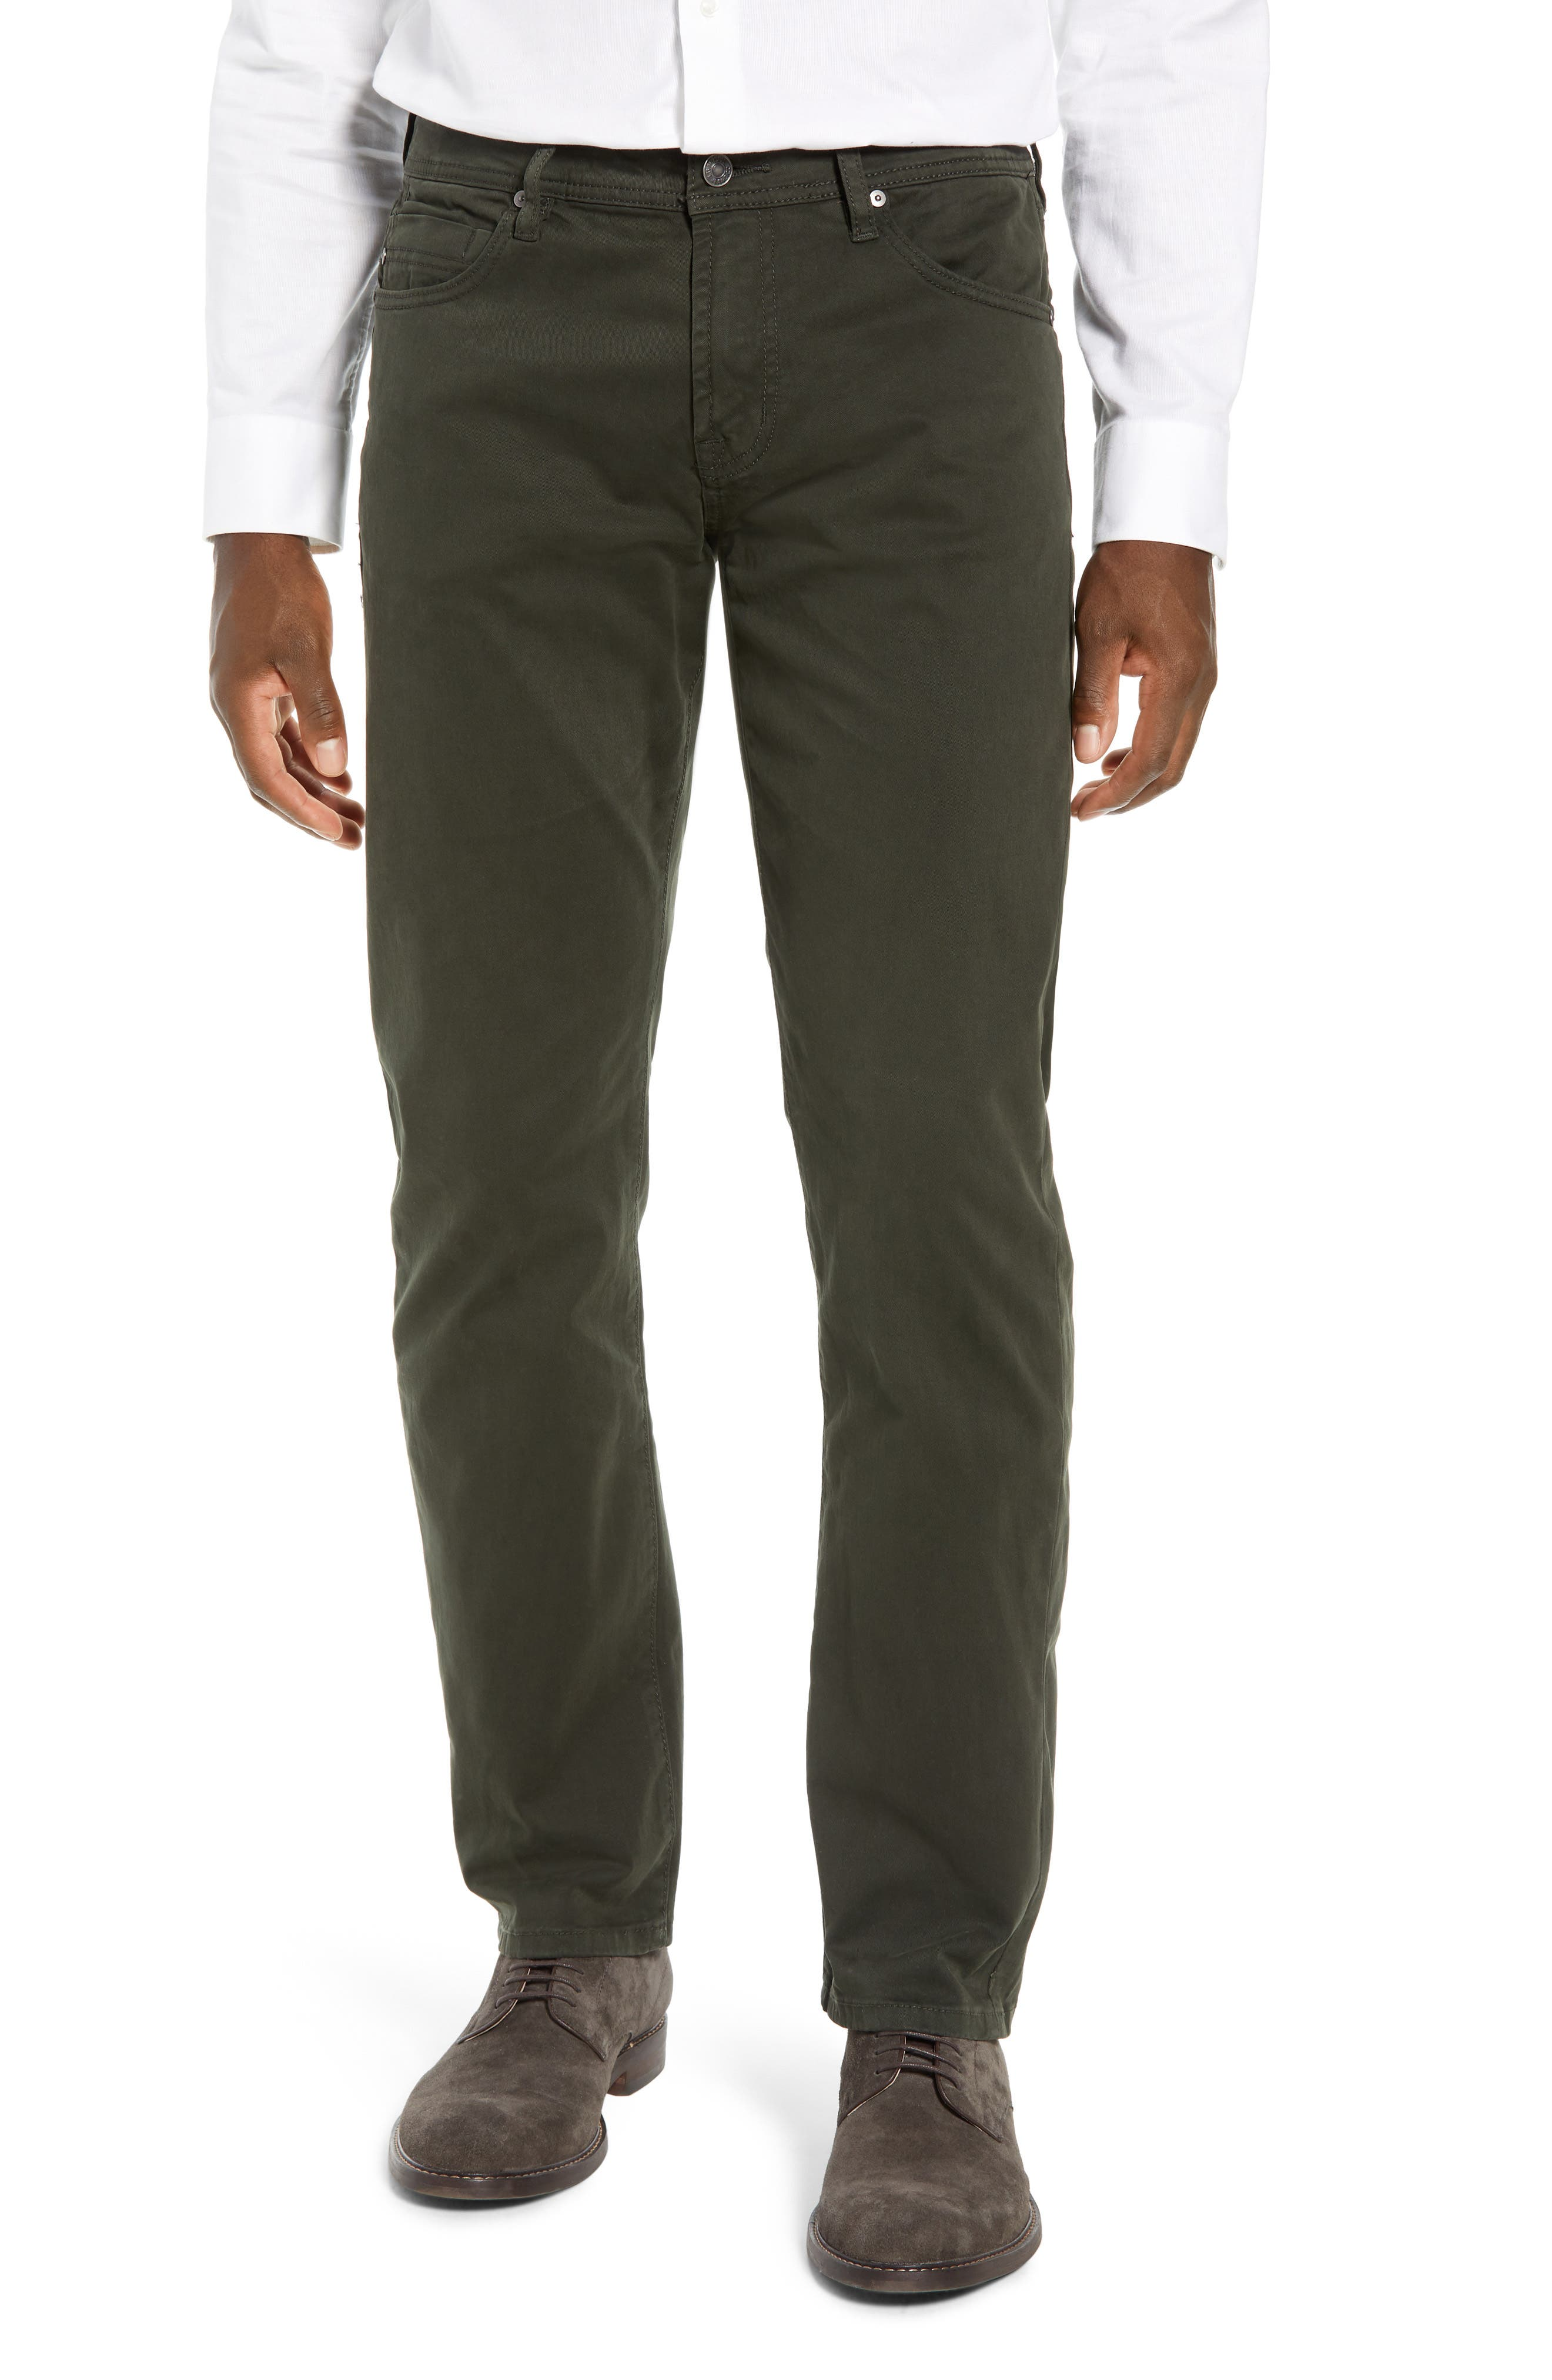 LIVERPOOL, Regent Relaxed Straight Leg Twill Pants, Main thumbnail 1, color, OLIVE MULCH